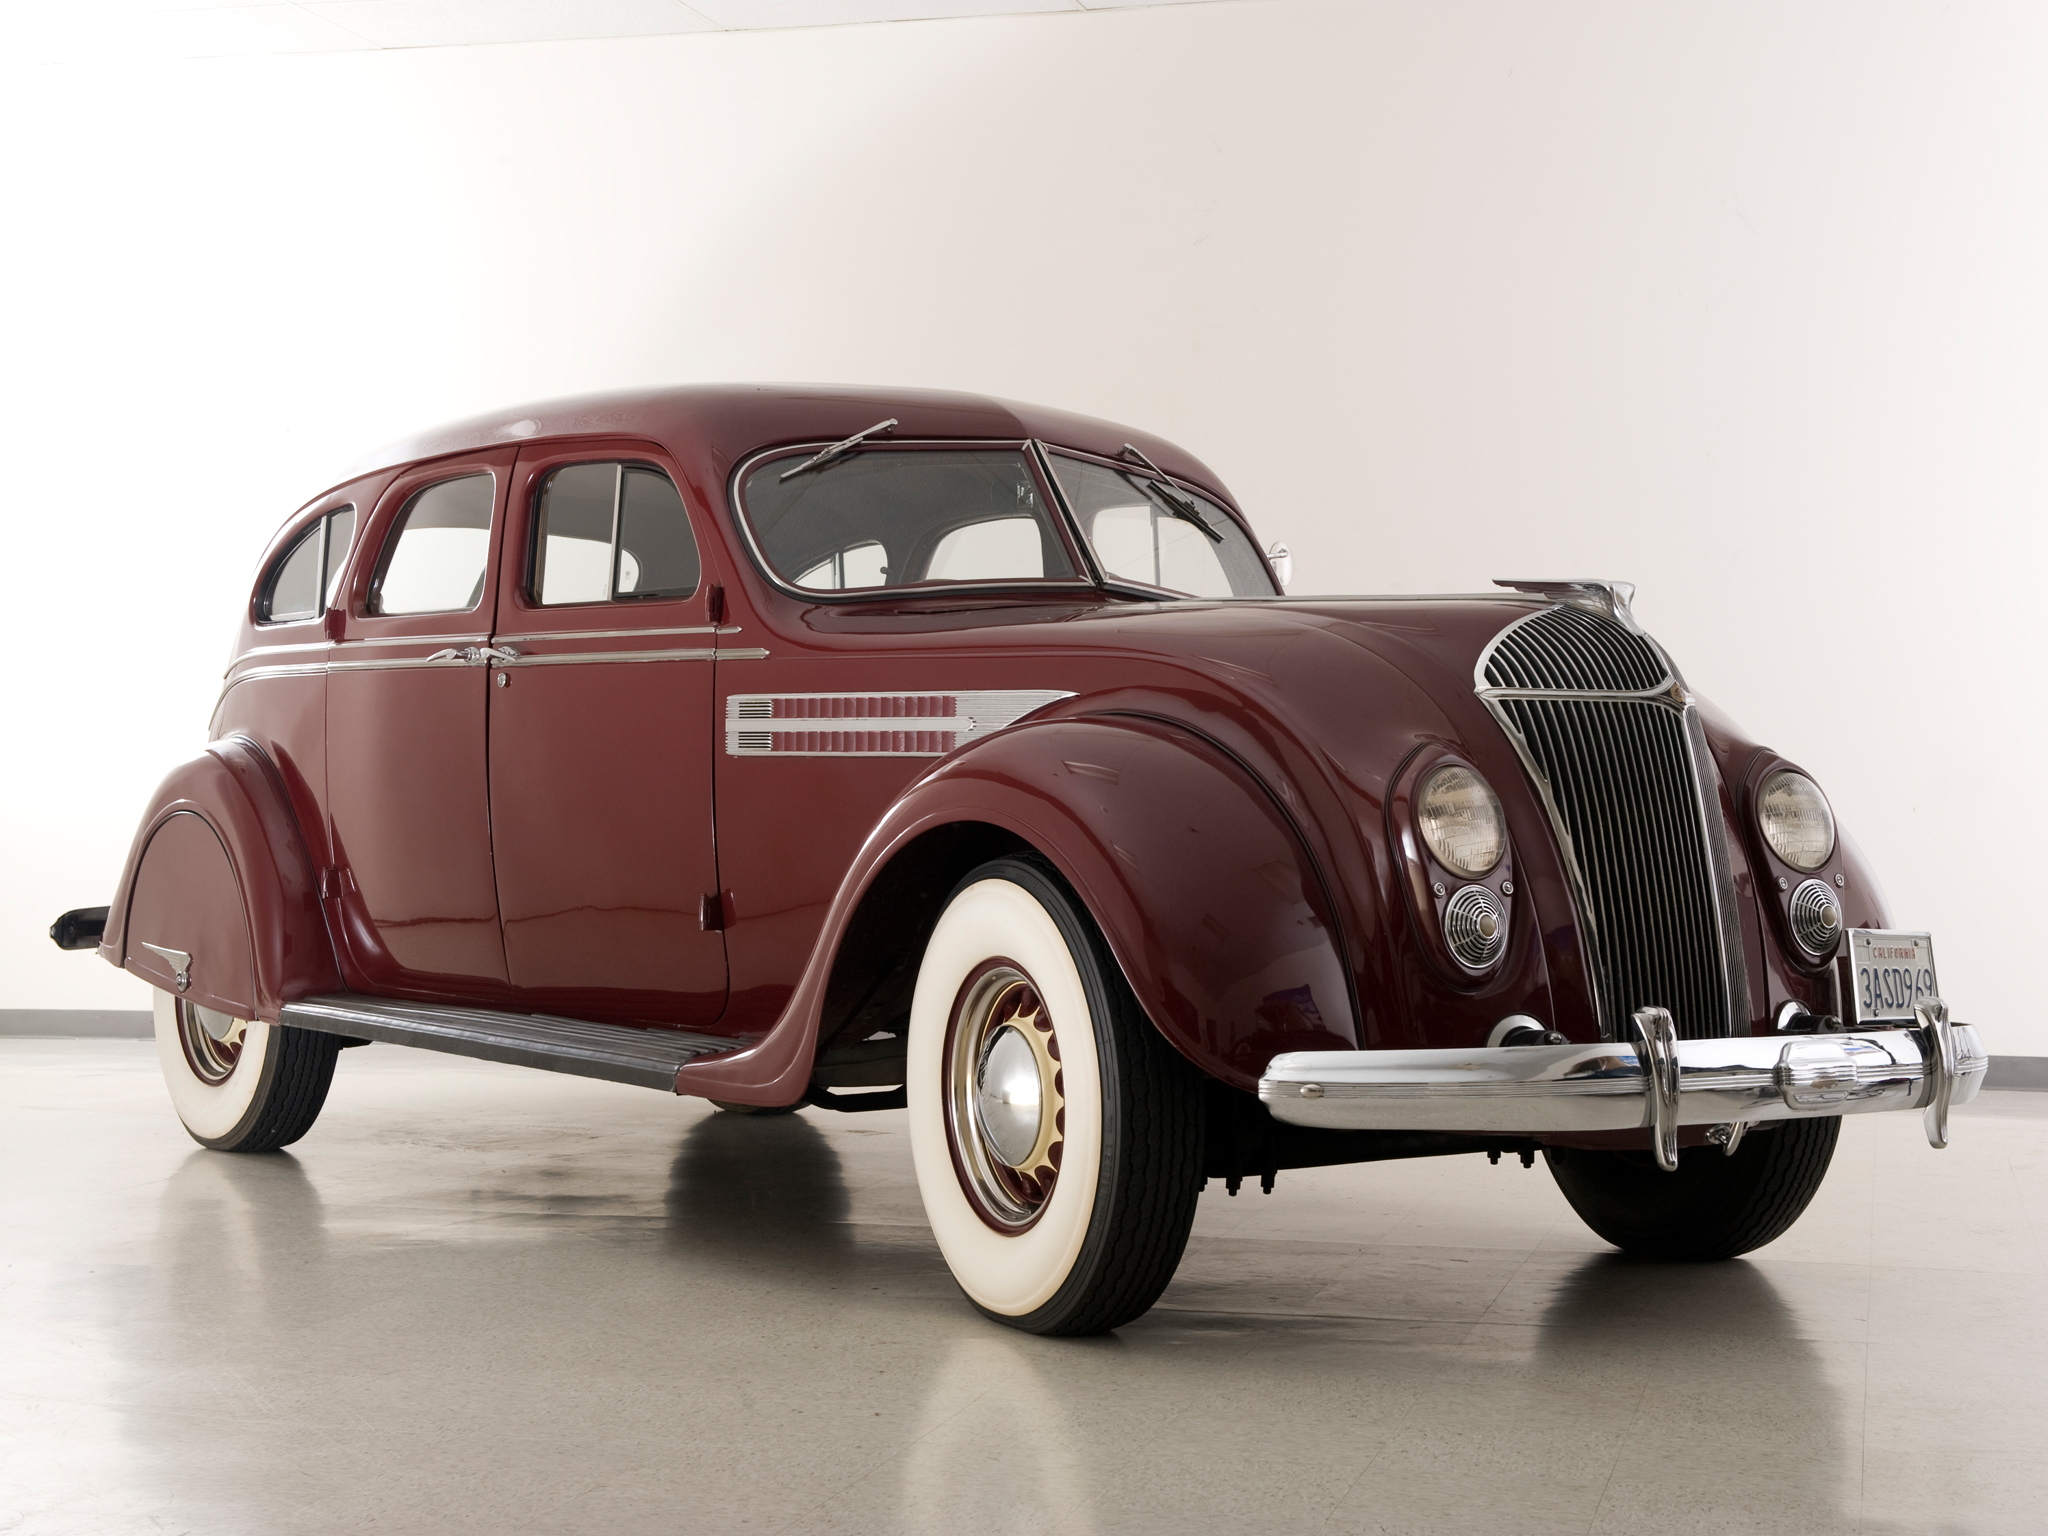 Chrysler Airflow Photos Photogallery With 18 Pics